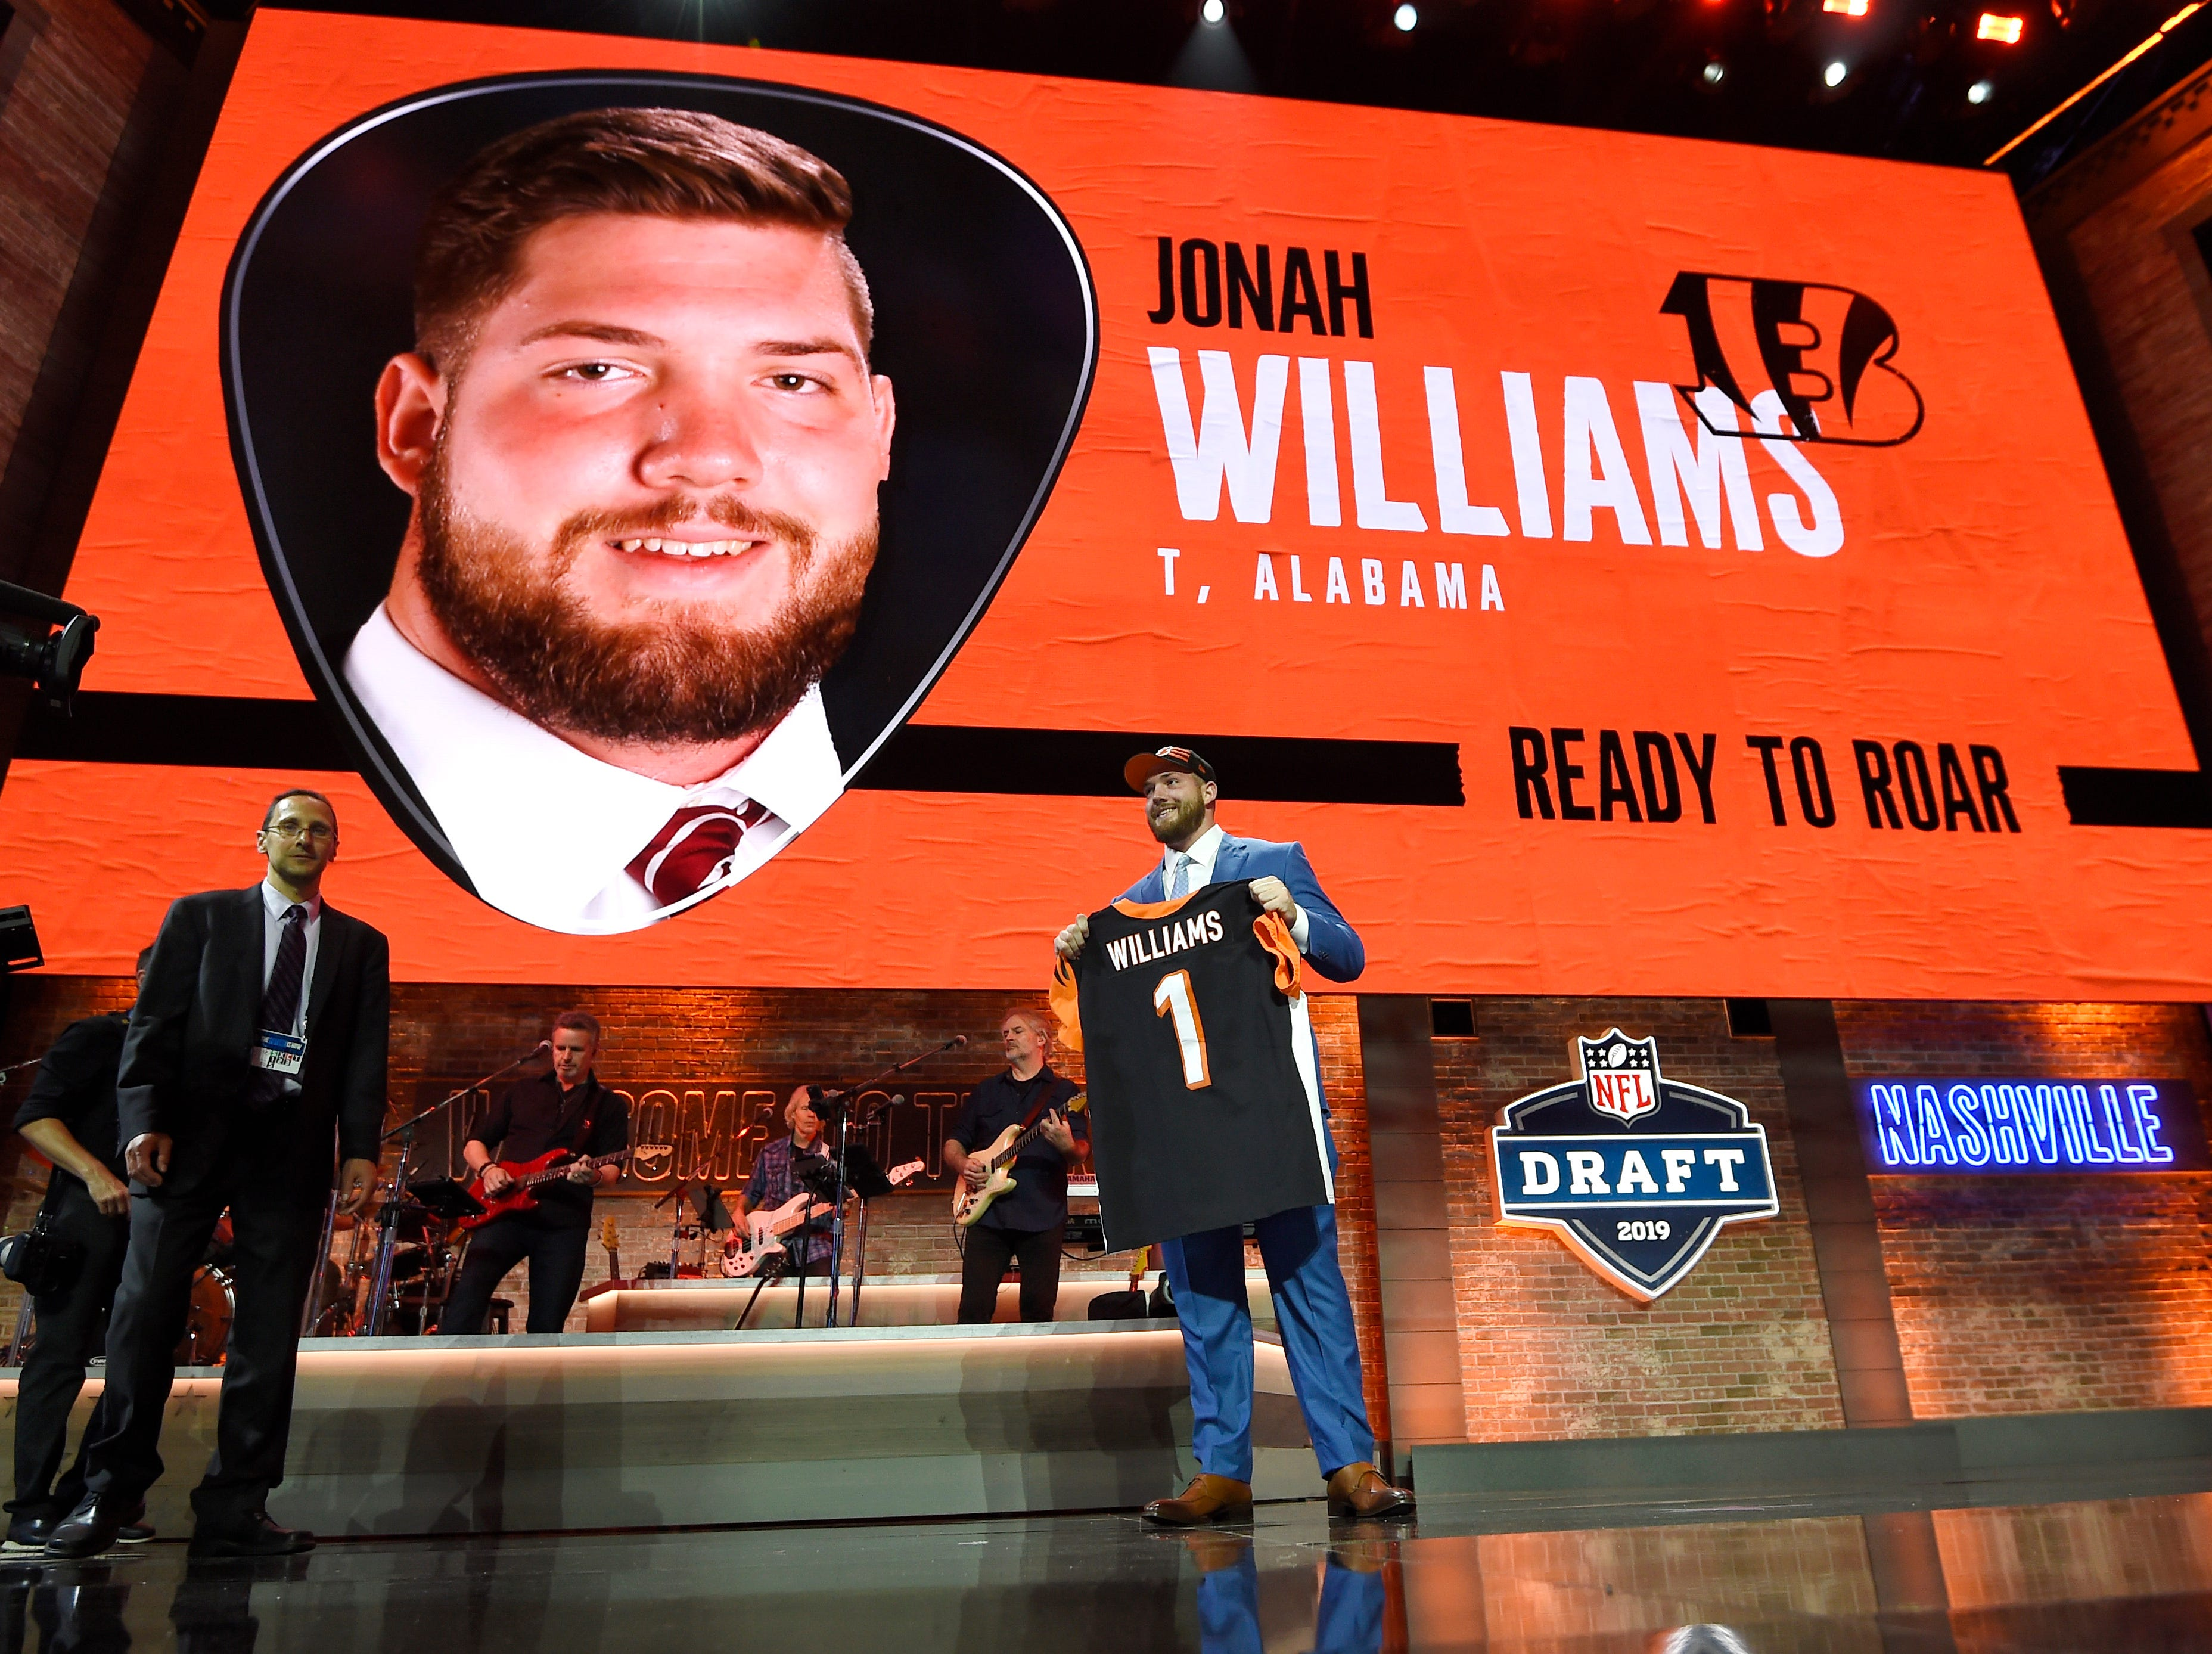 Jonah Williams holds his new Cincinnati Bengals jersey during the first round of the NFL Draft Thursday, April 25, 2019, in Nashville, Tenn.